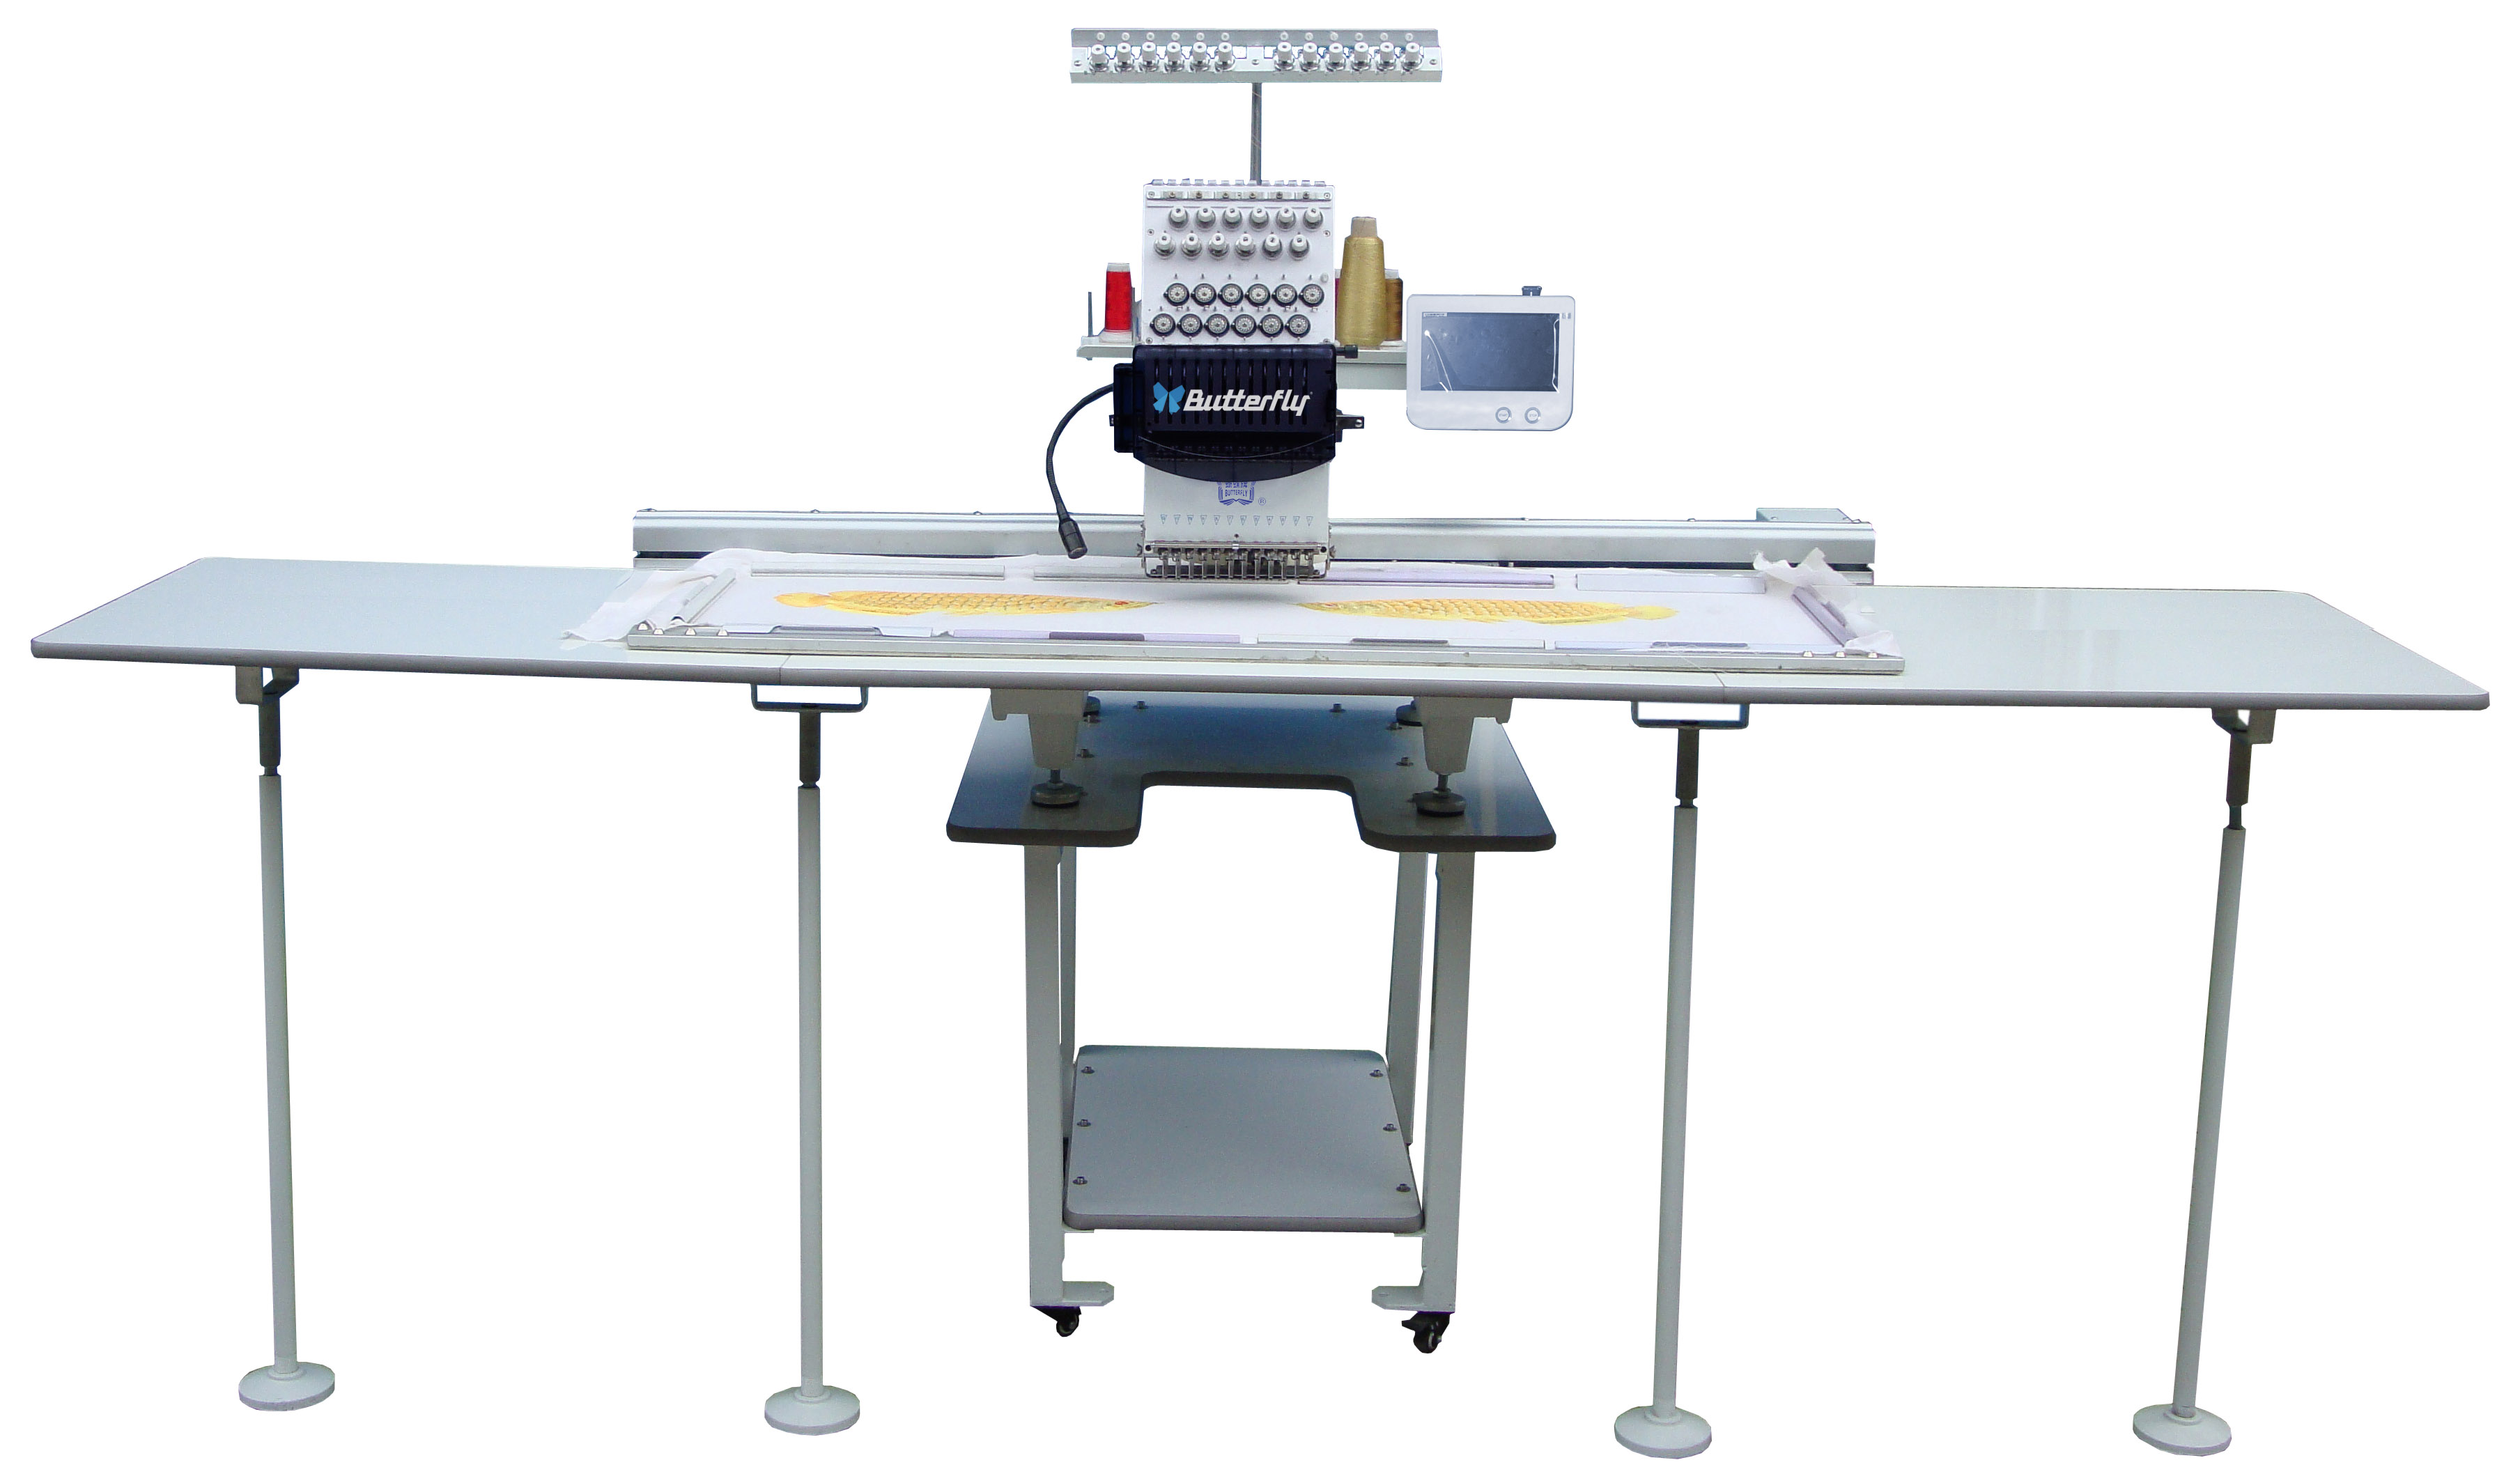 Large sewing area single head embroidery machine 1300x500